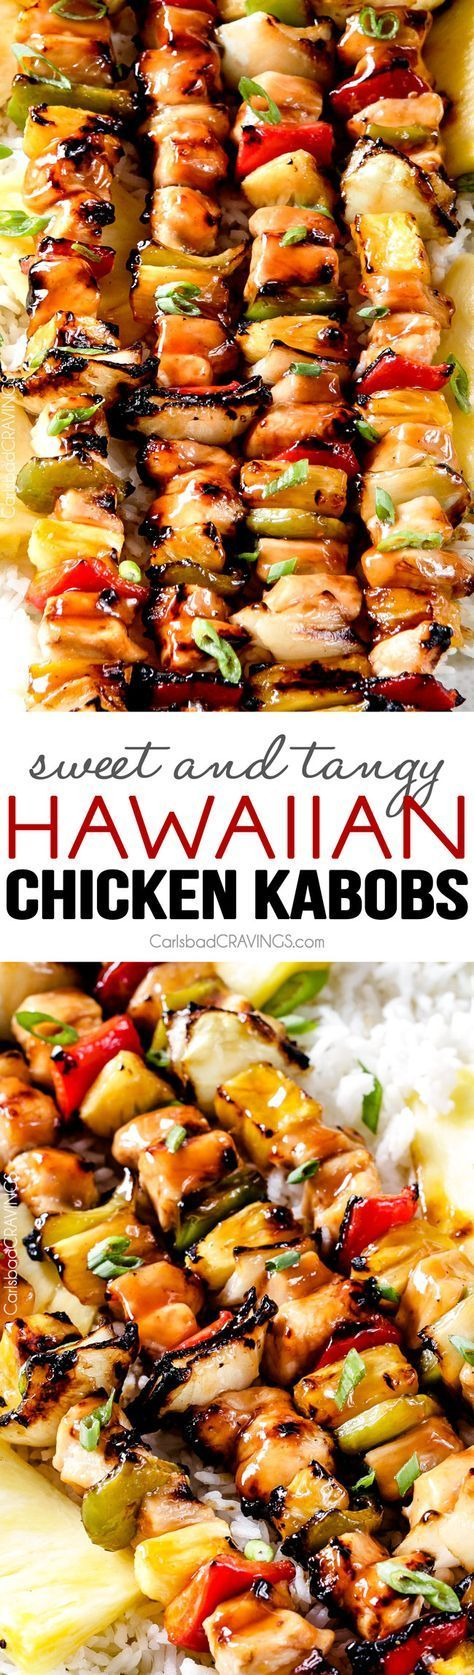 How long do i grill chicken kabobs - Grilled Or Broiled Hawaiian Chicken Kabobs This Is My New Favorite Grill Recipe